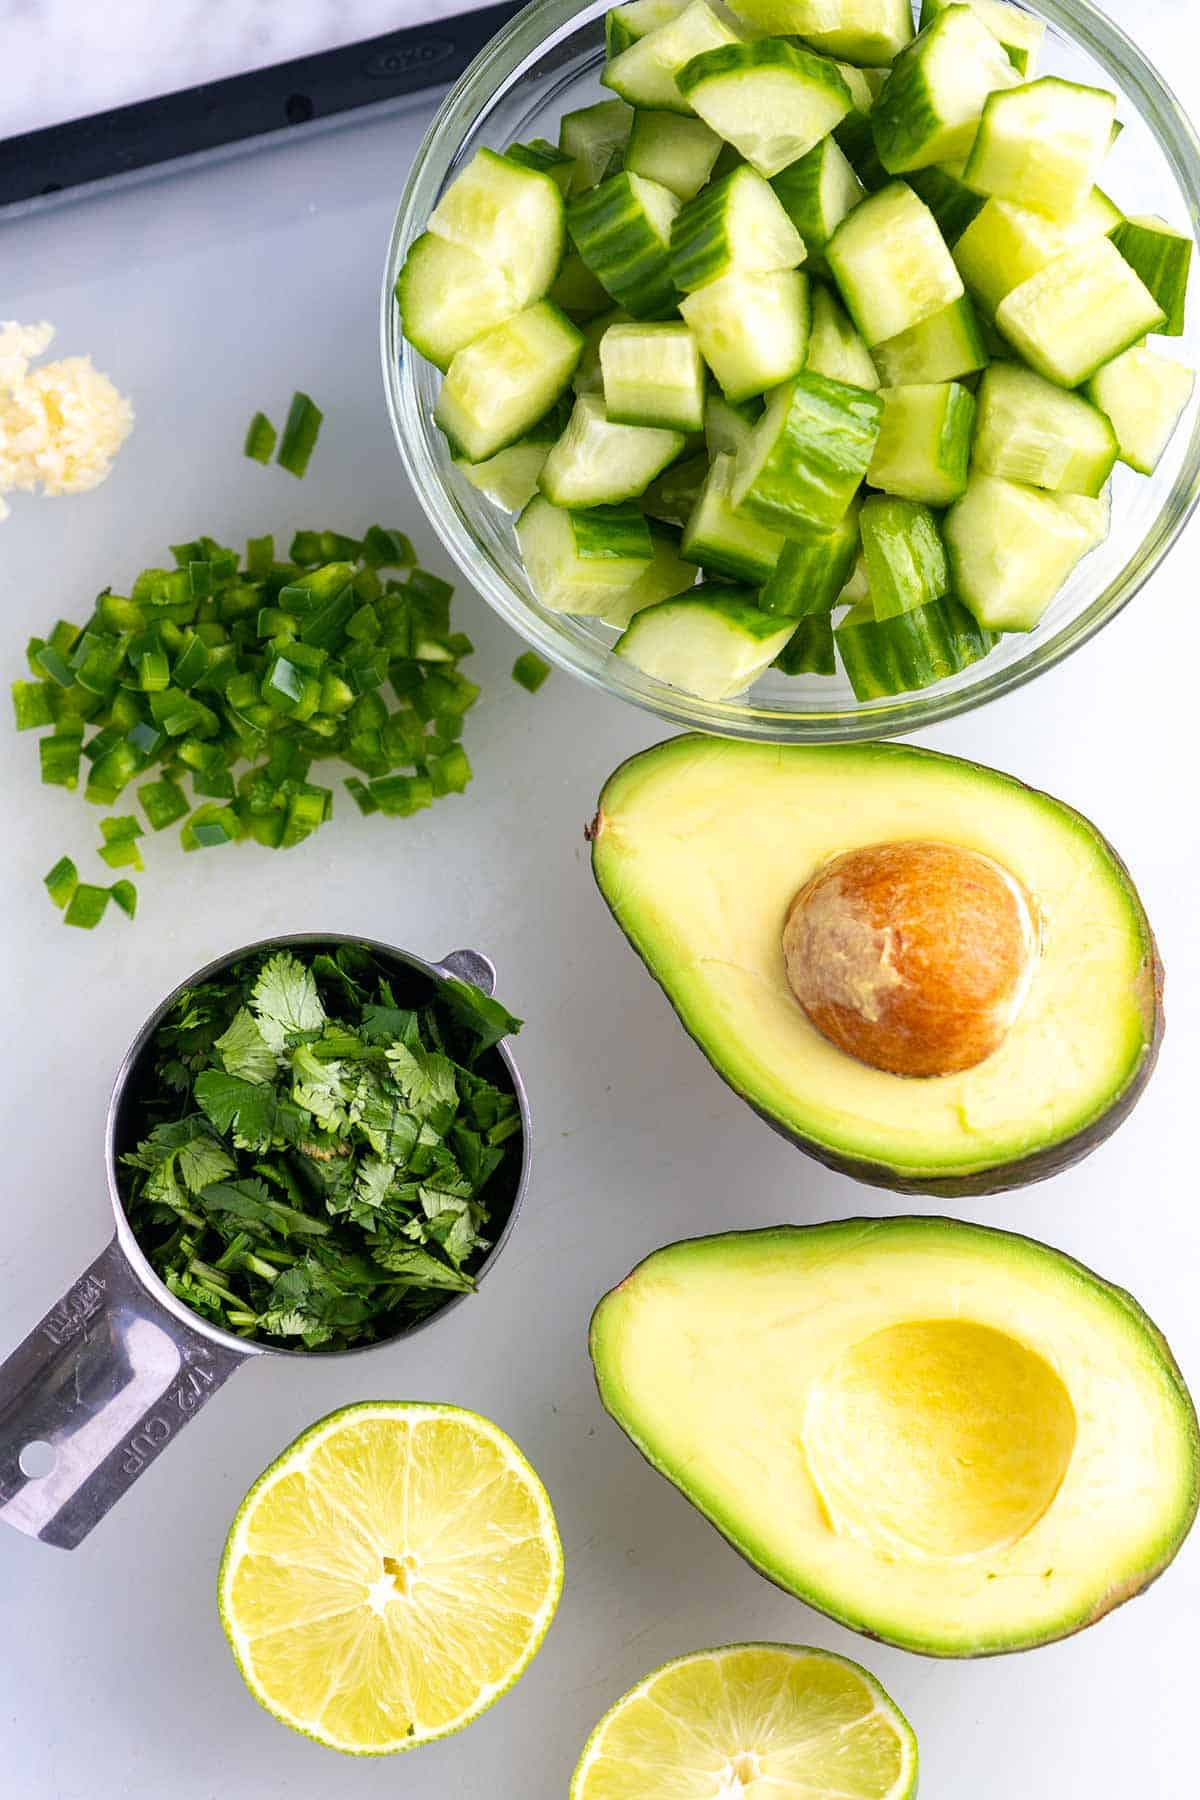 This salad combines fresh, ripe avocados, crisp cool cucumbers, and a light lime dressing. If you love guacamole, then you will love this easy avocado salad.